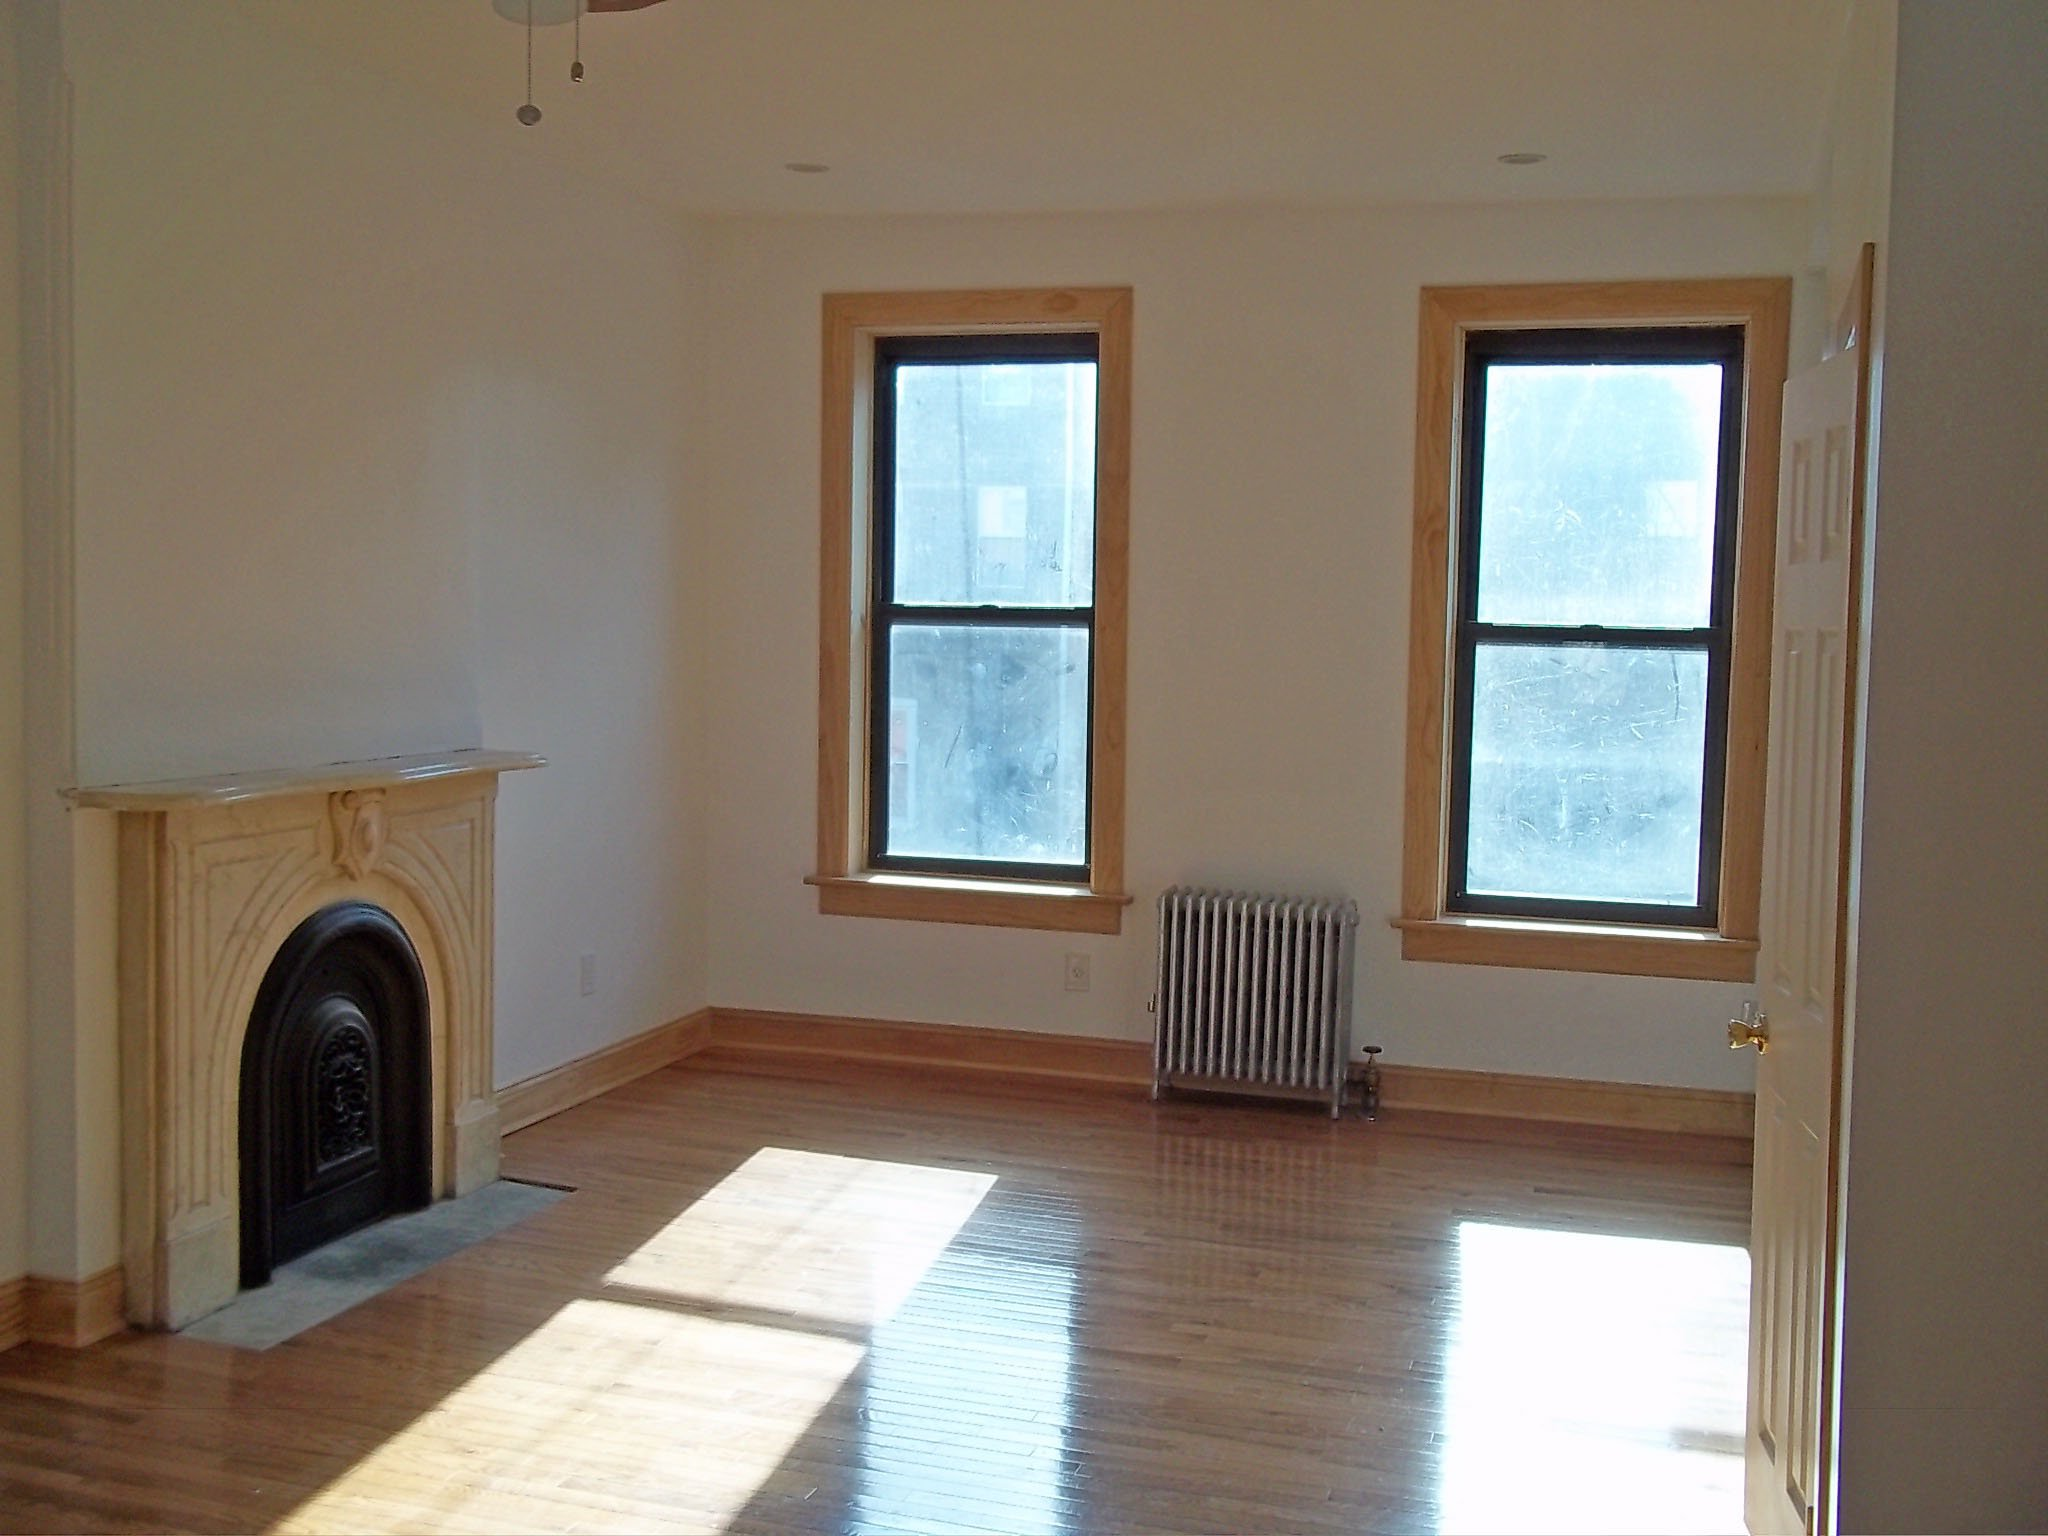 Bedford stuyvesant 1 bedroom apartment for rent brooklyn - Boston 1 bedroom apartments for sale ...